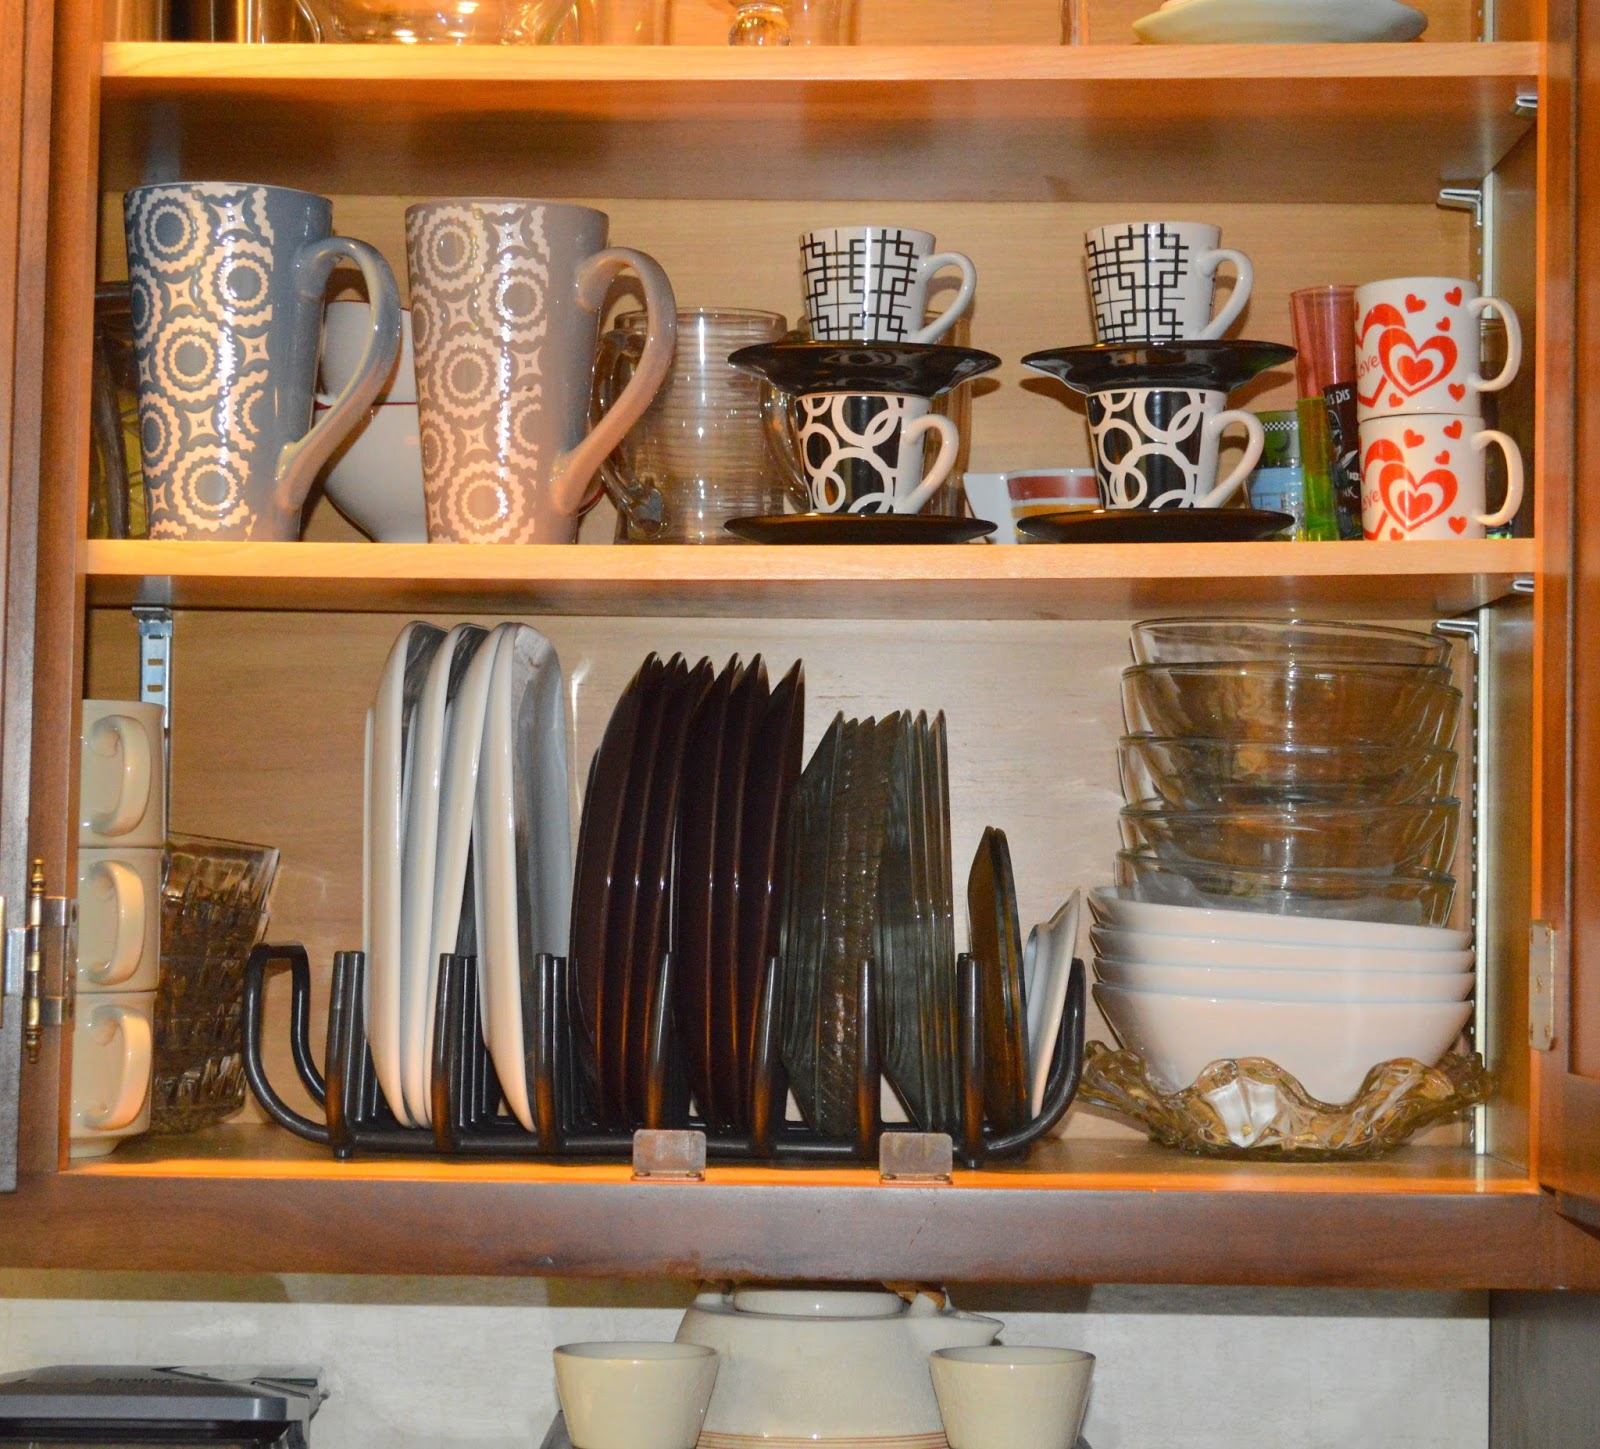 Using A Dish Drainer To Hold The Dishes Up Right In Cabinet